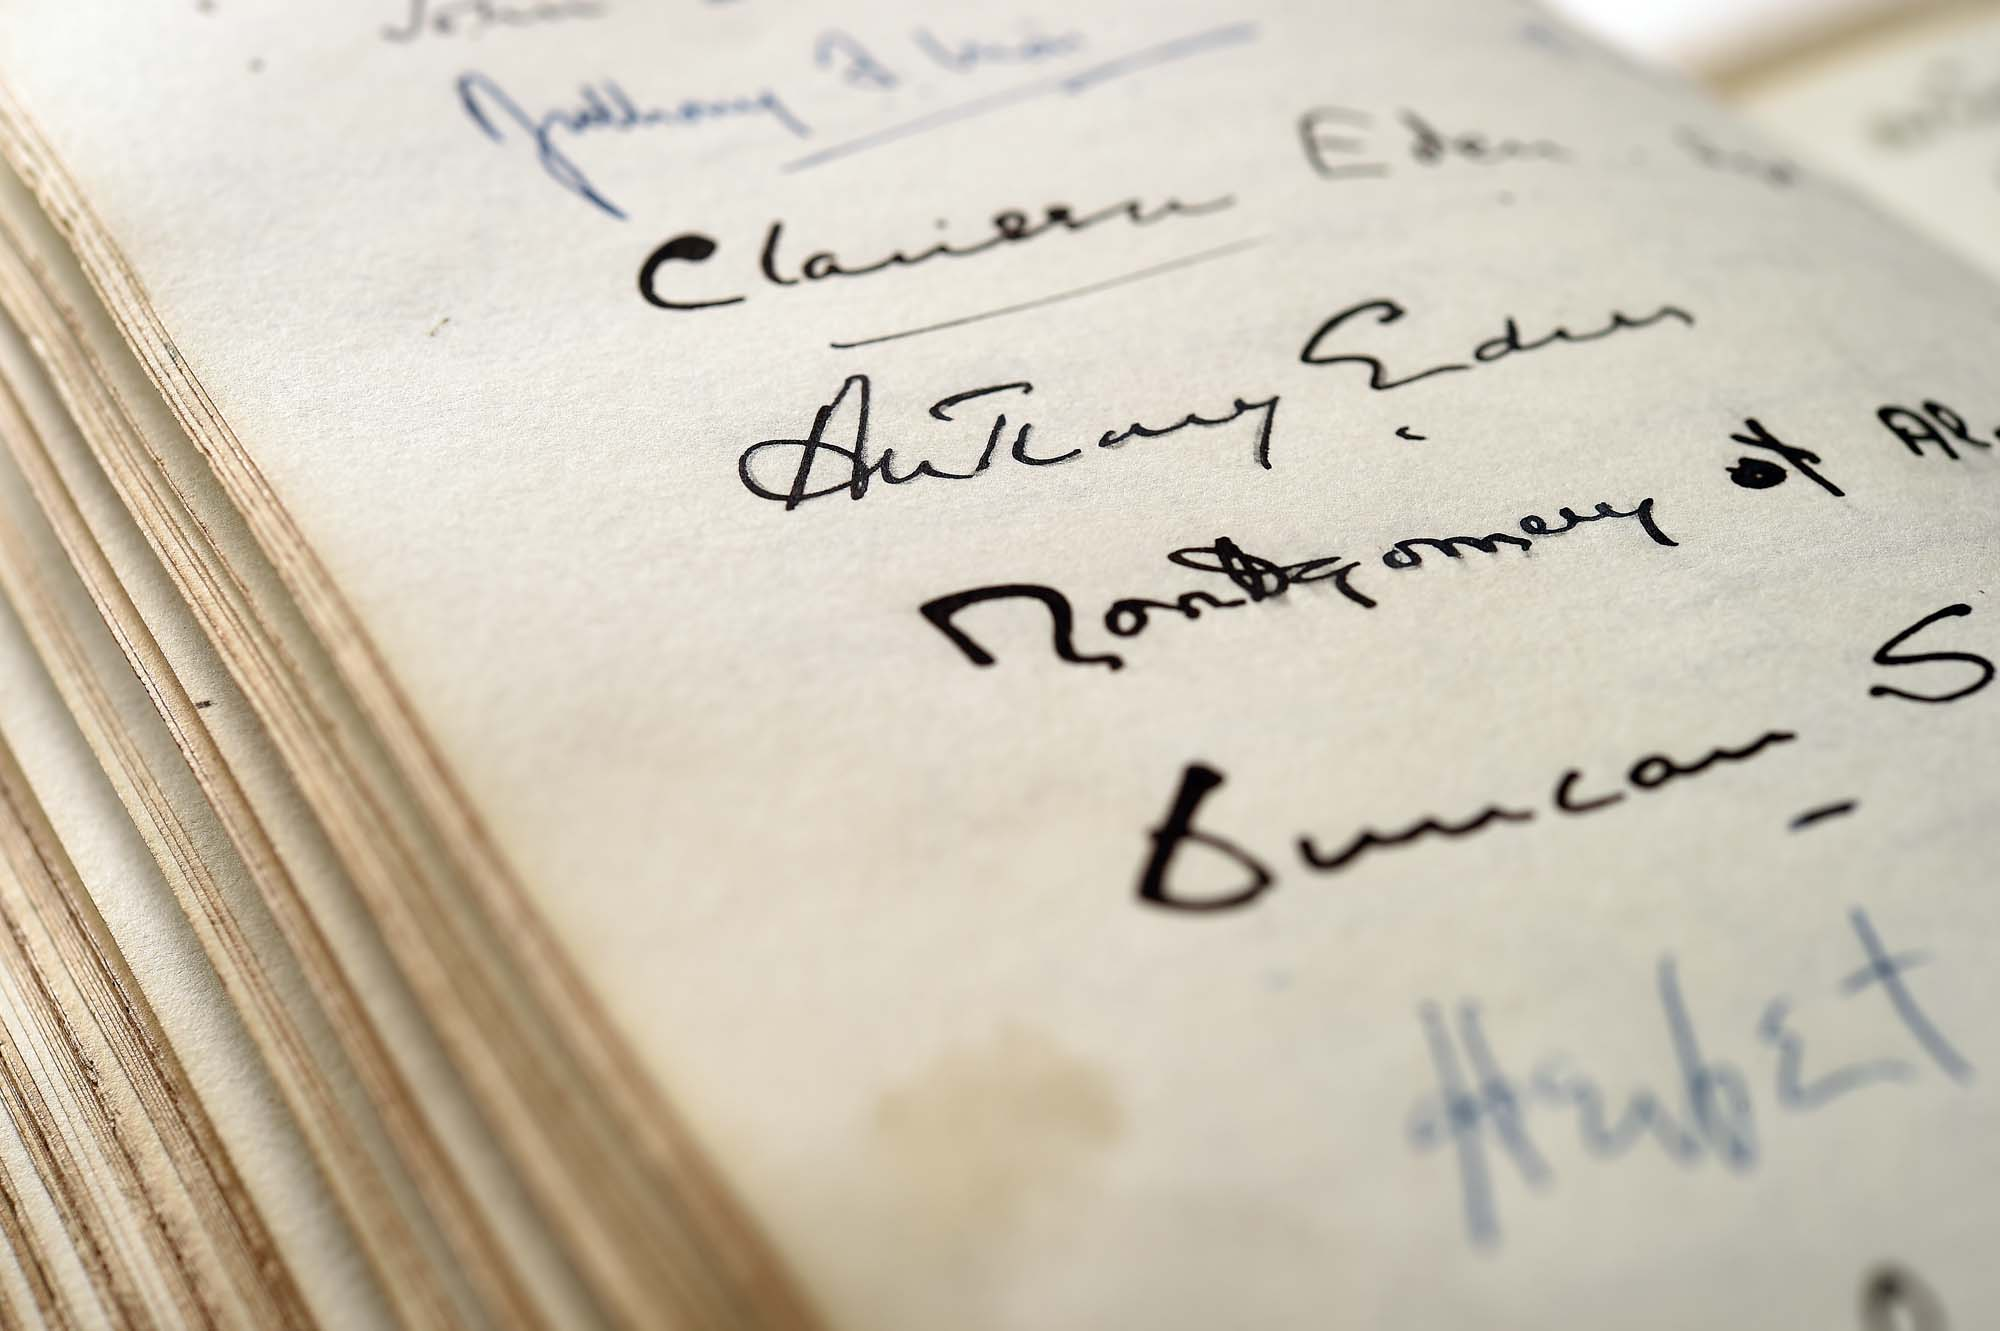 a photo of the open pages of a guest book with signatures